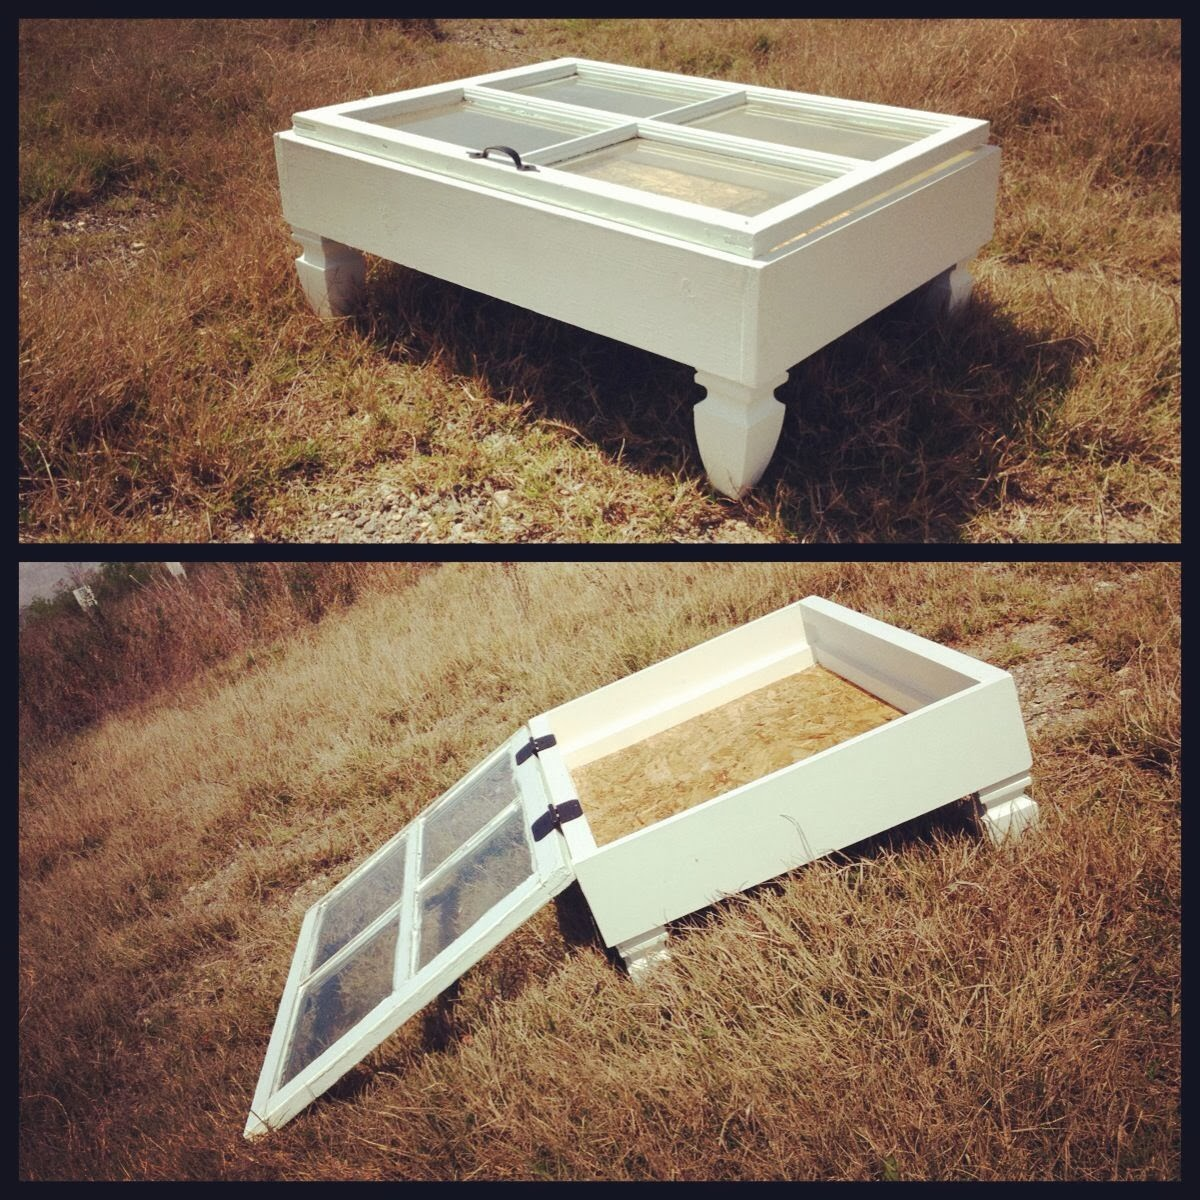 mister b's bus: past project post :: vintage window coffee table